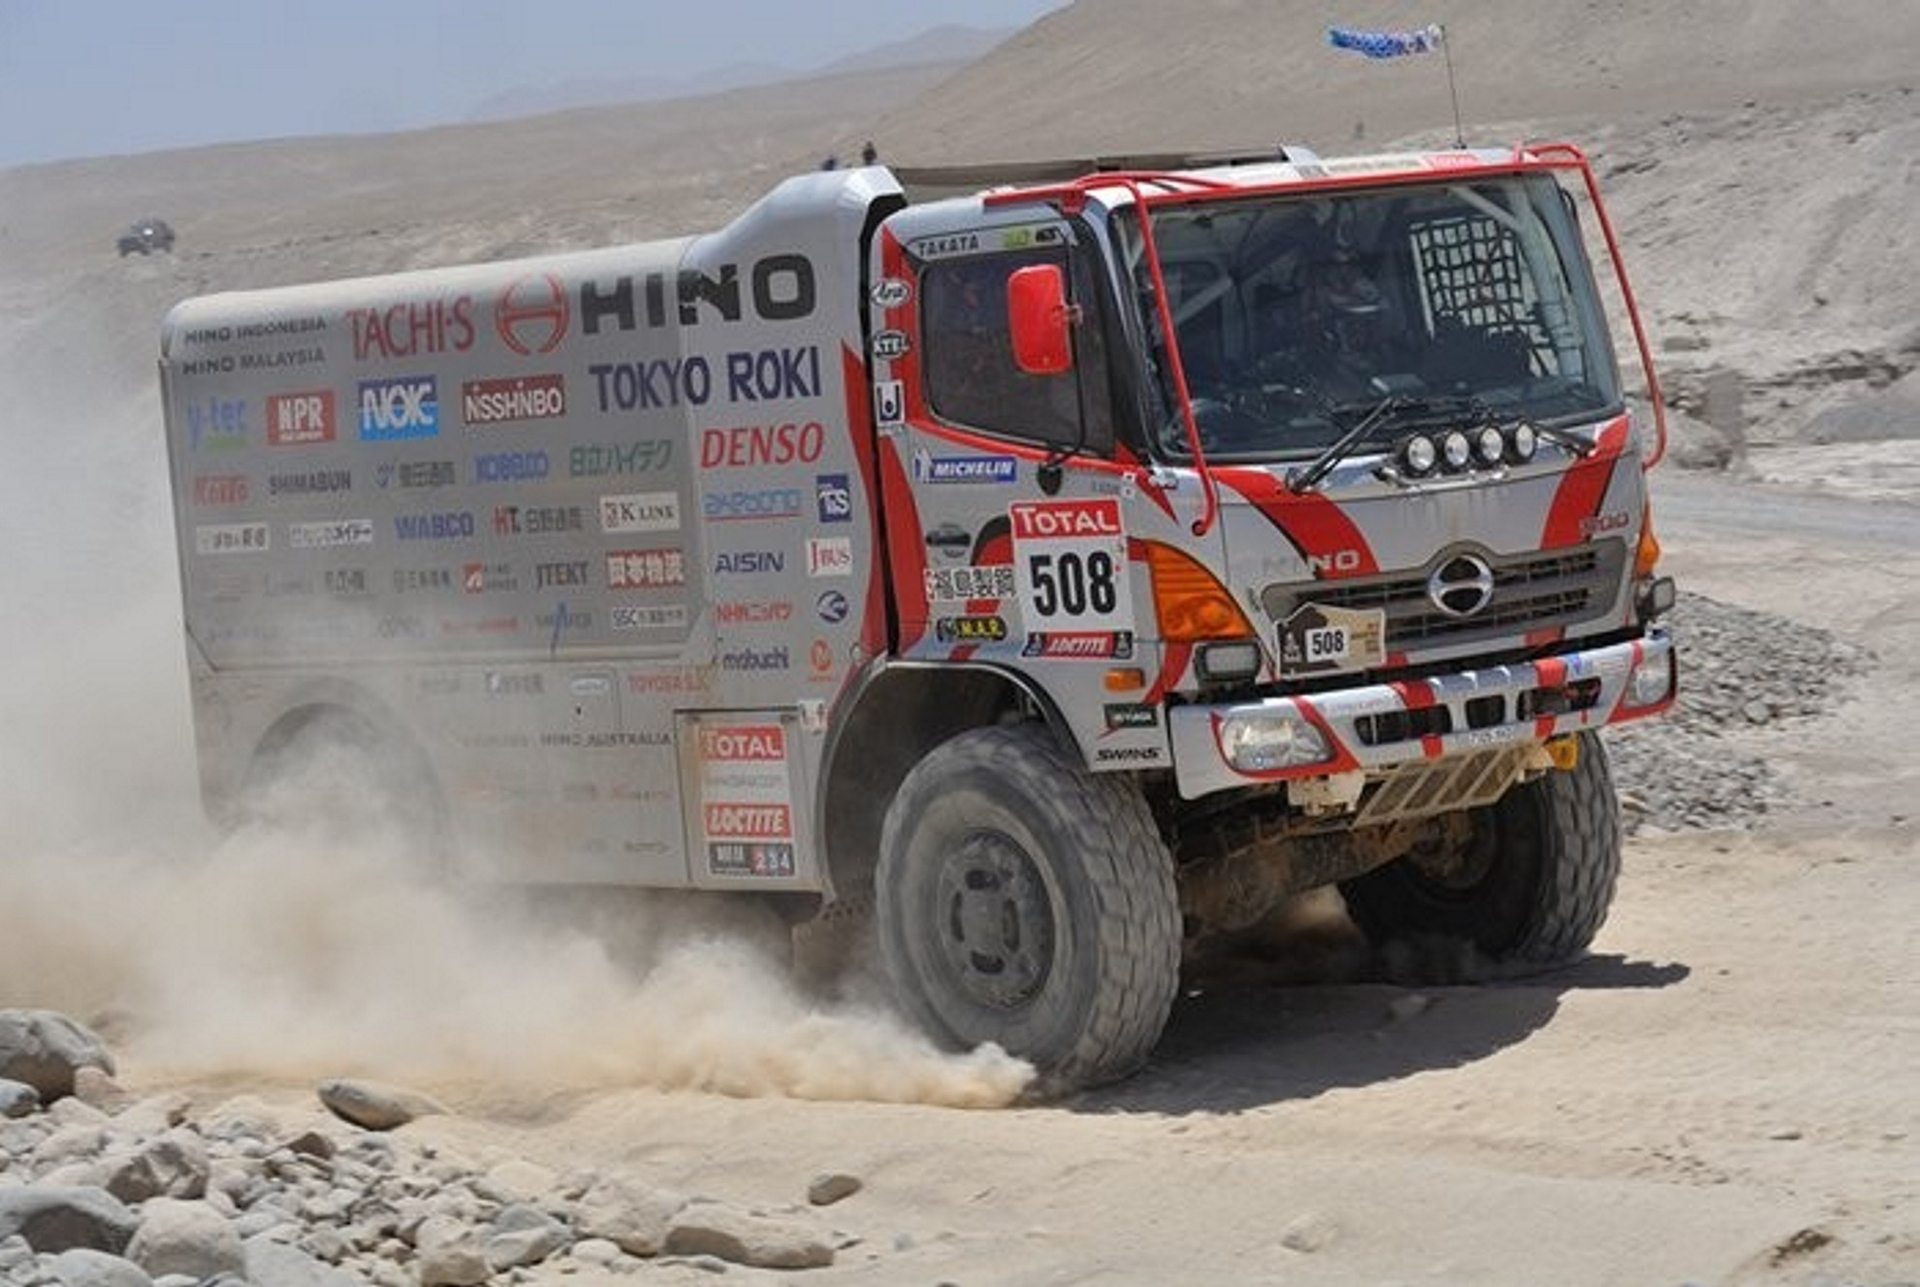 2013 Dakar Rally Hino in the Race